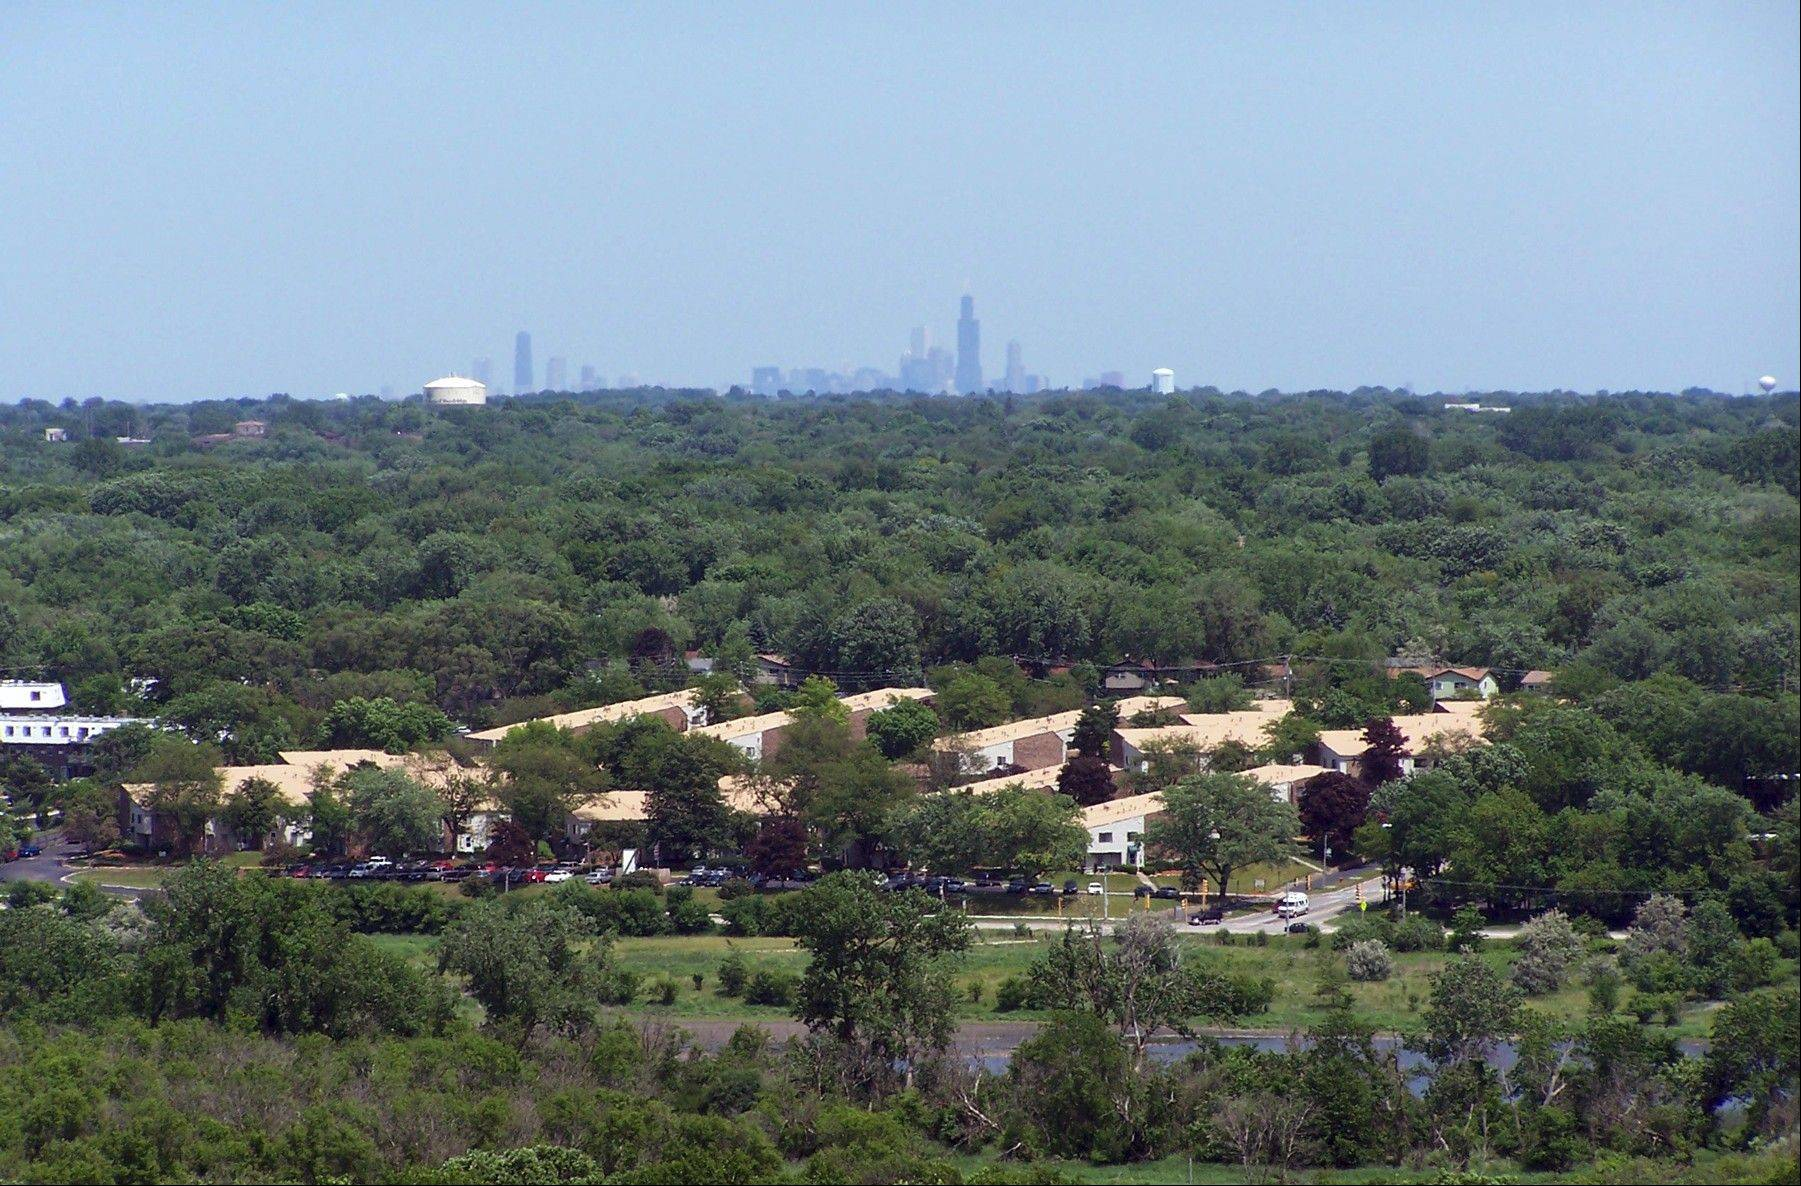 The scenic overlook in Greene Valley Forest Preserve in Naperville offers a view of the Chicago skyline.